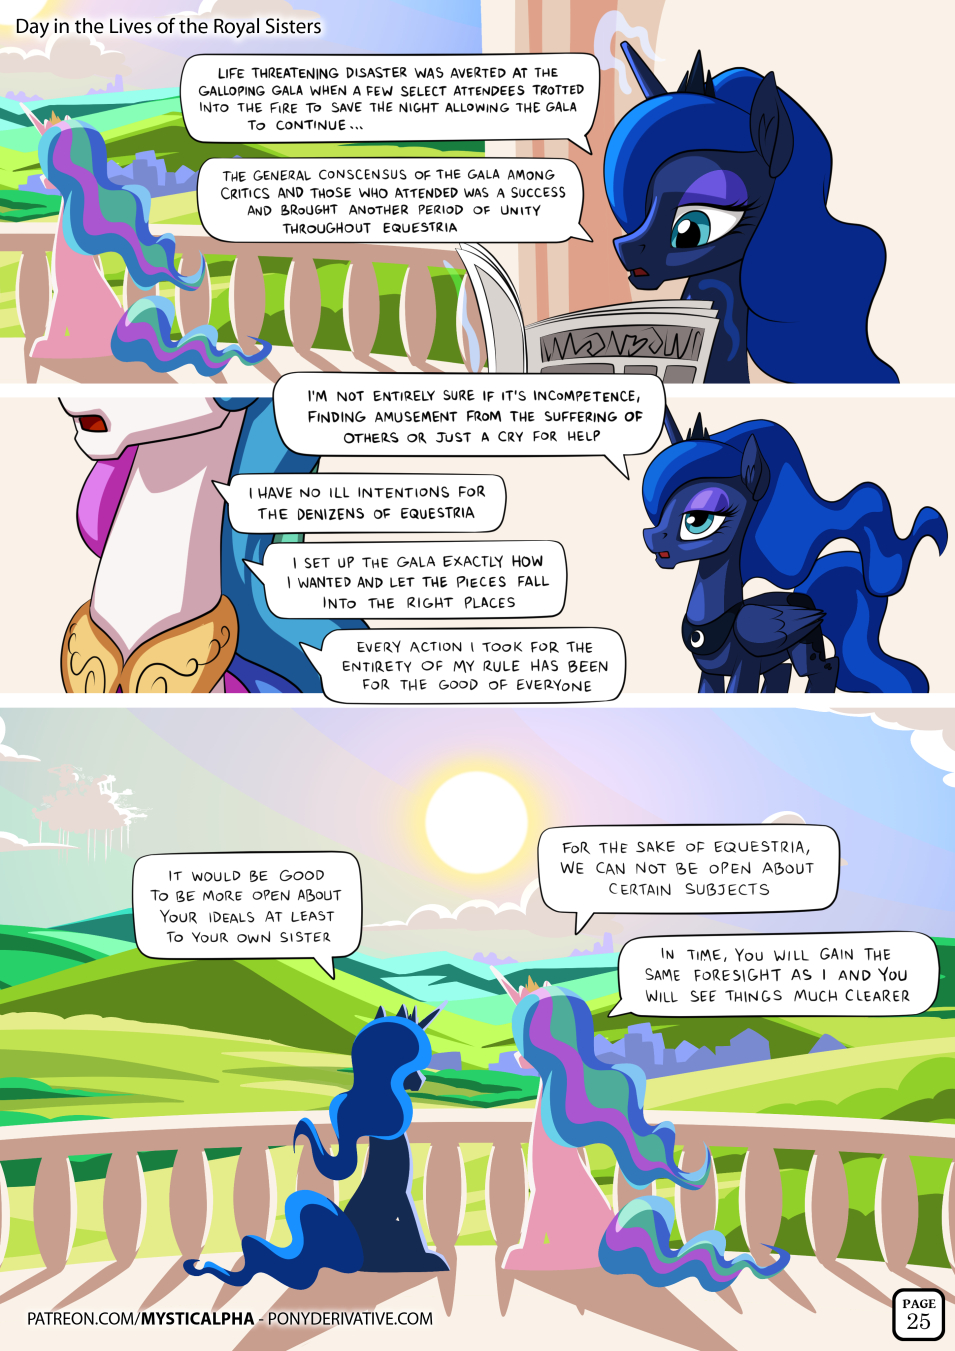 Day in the Lives of the Royal Sisters 25